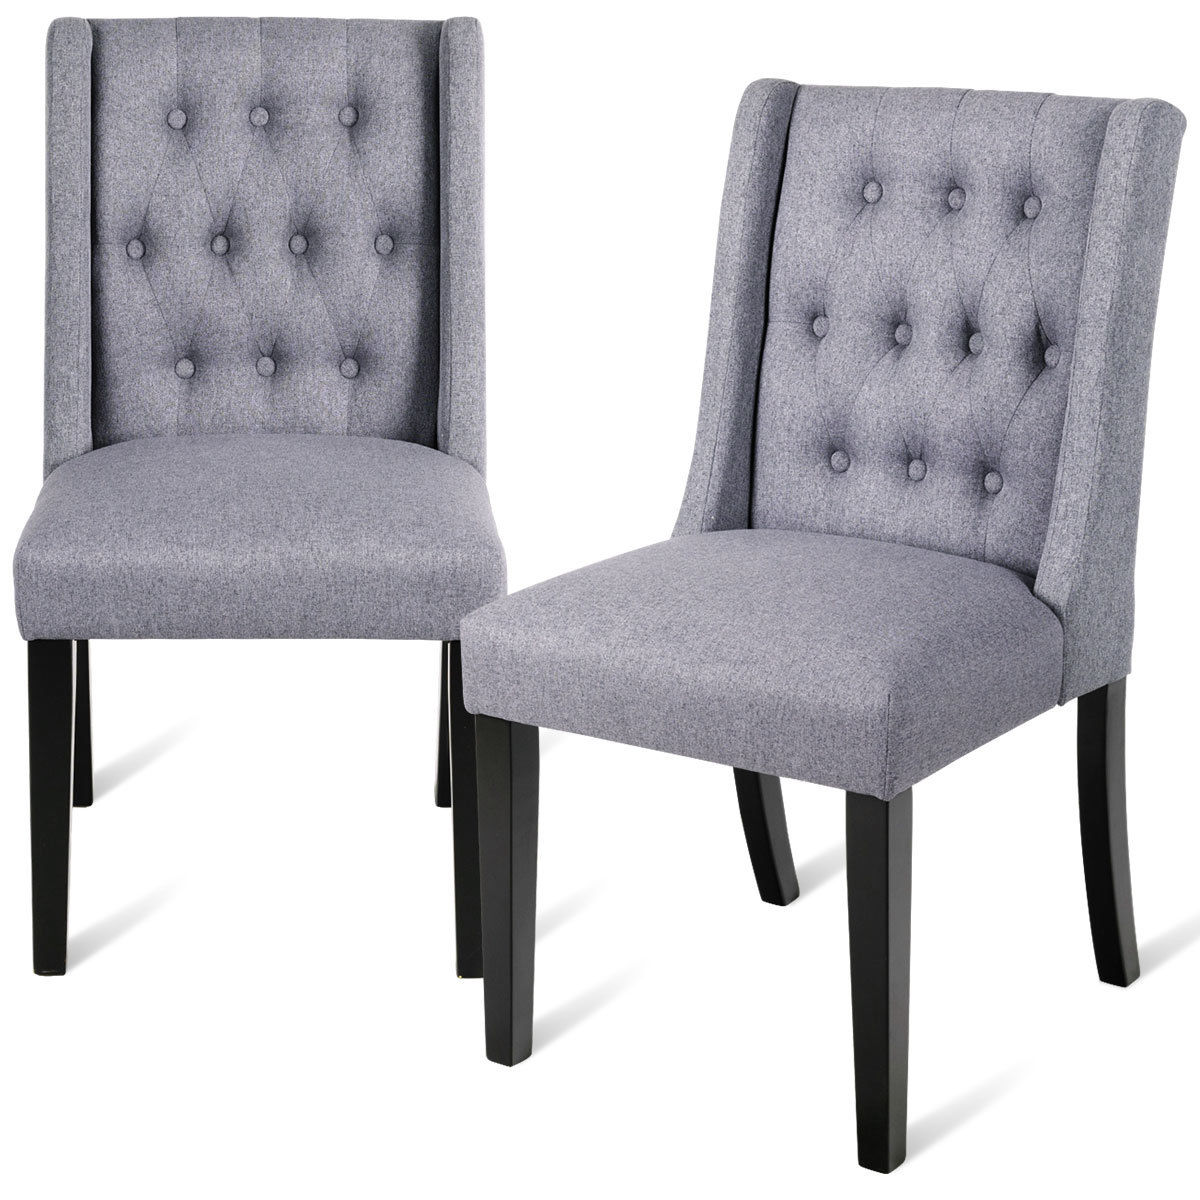 Costway Set of 2 Dining Side Chairs Wing Back Button Tufted Fabric with Wood Legs Gray